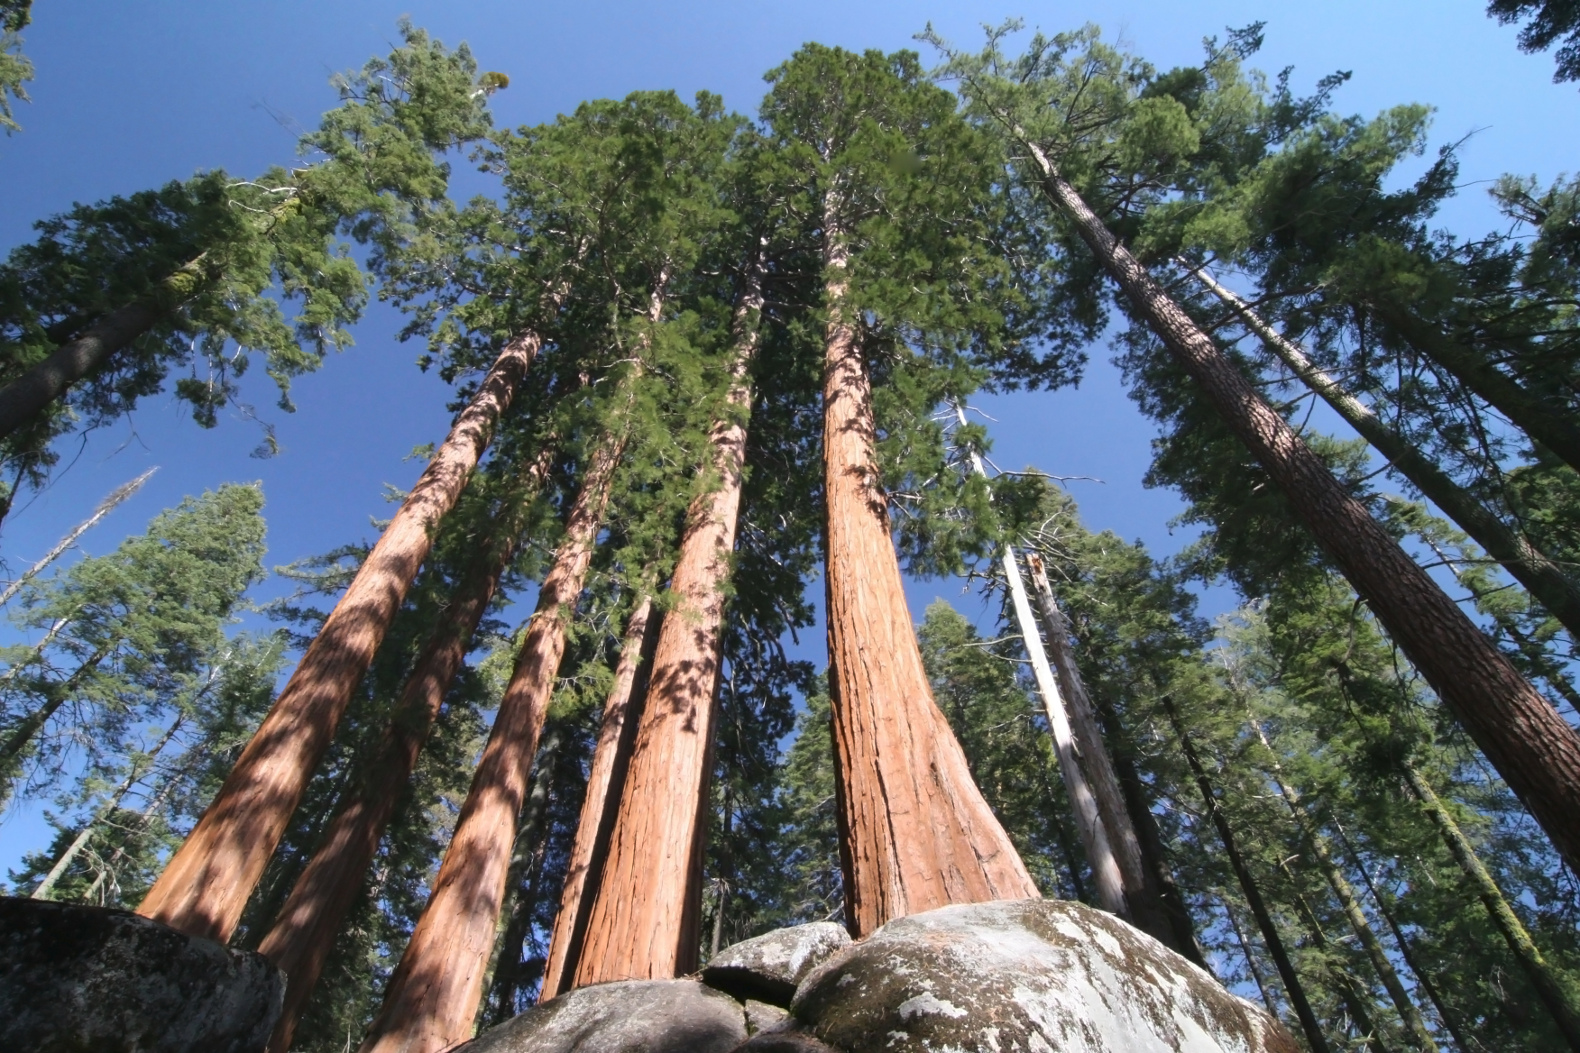 The tallest tree in the world is the giant Hyperion